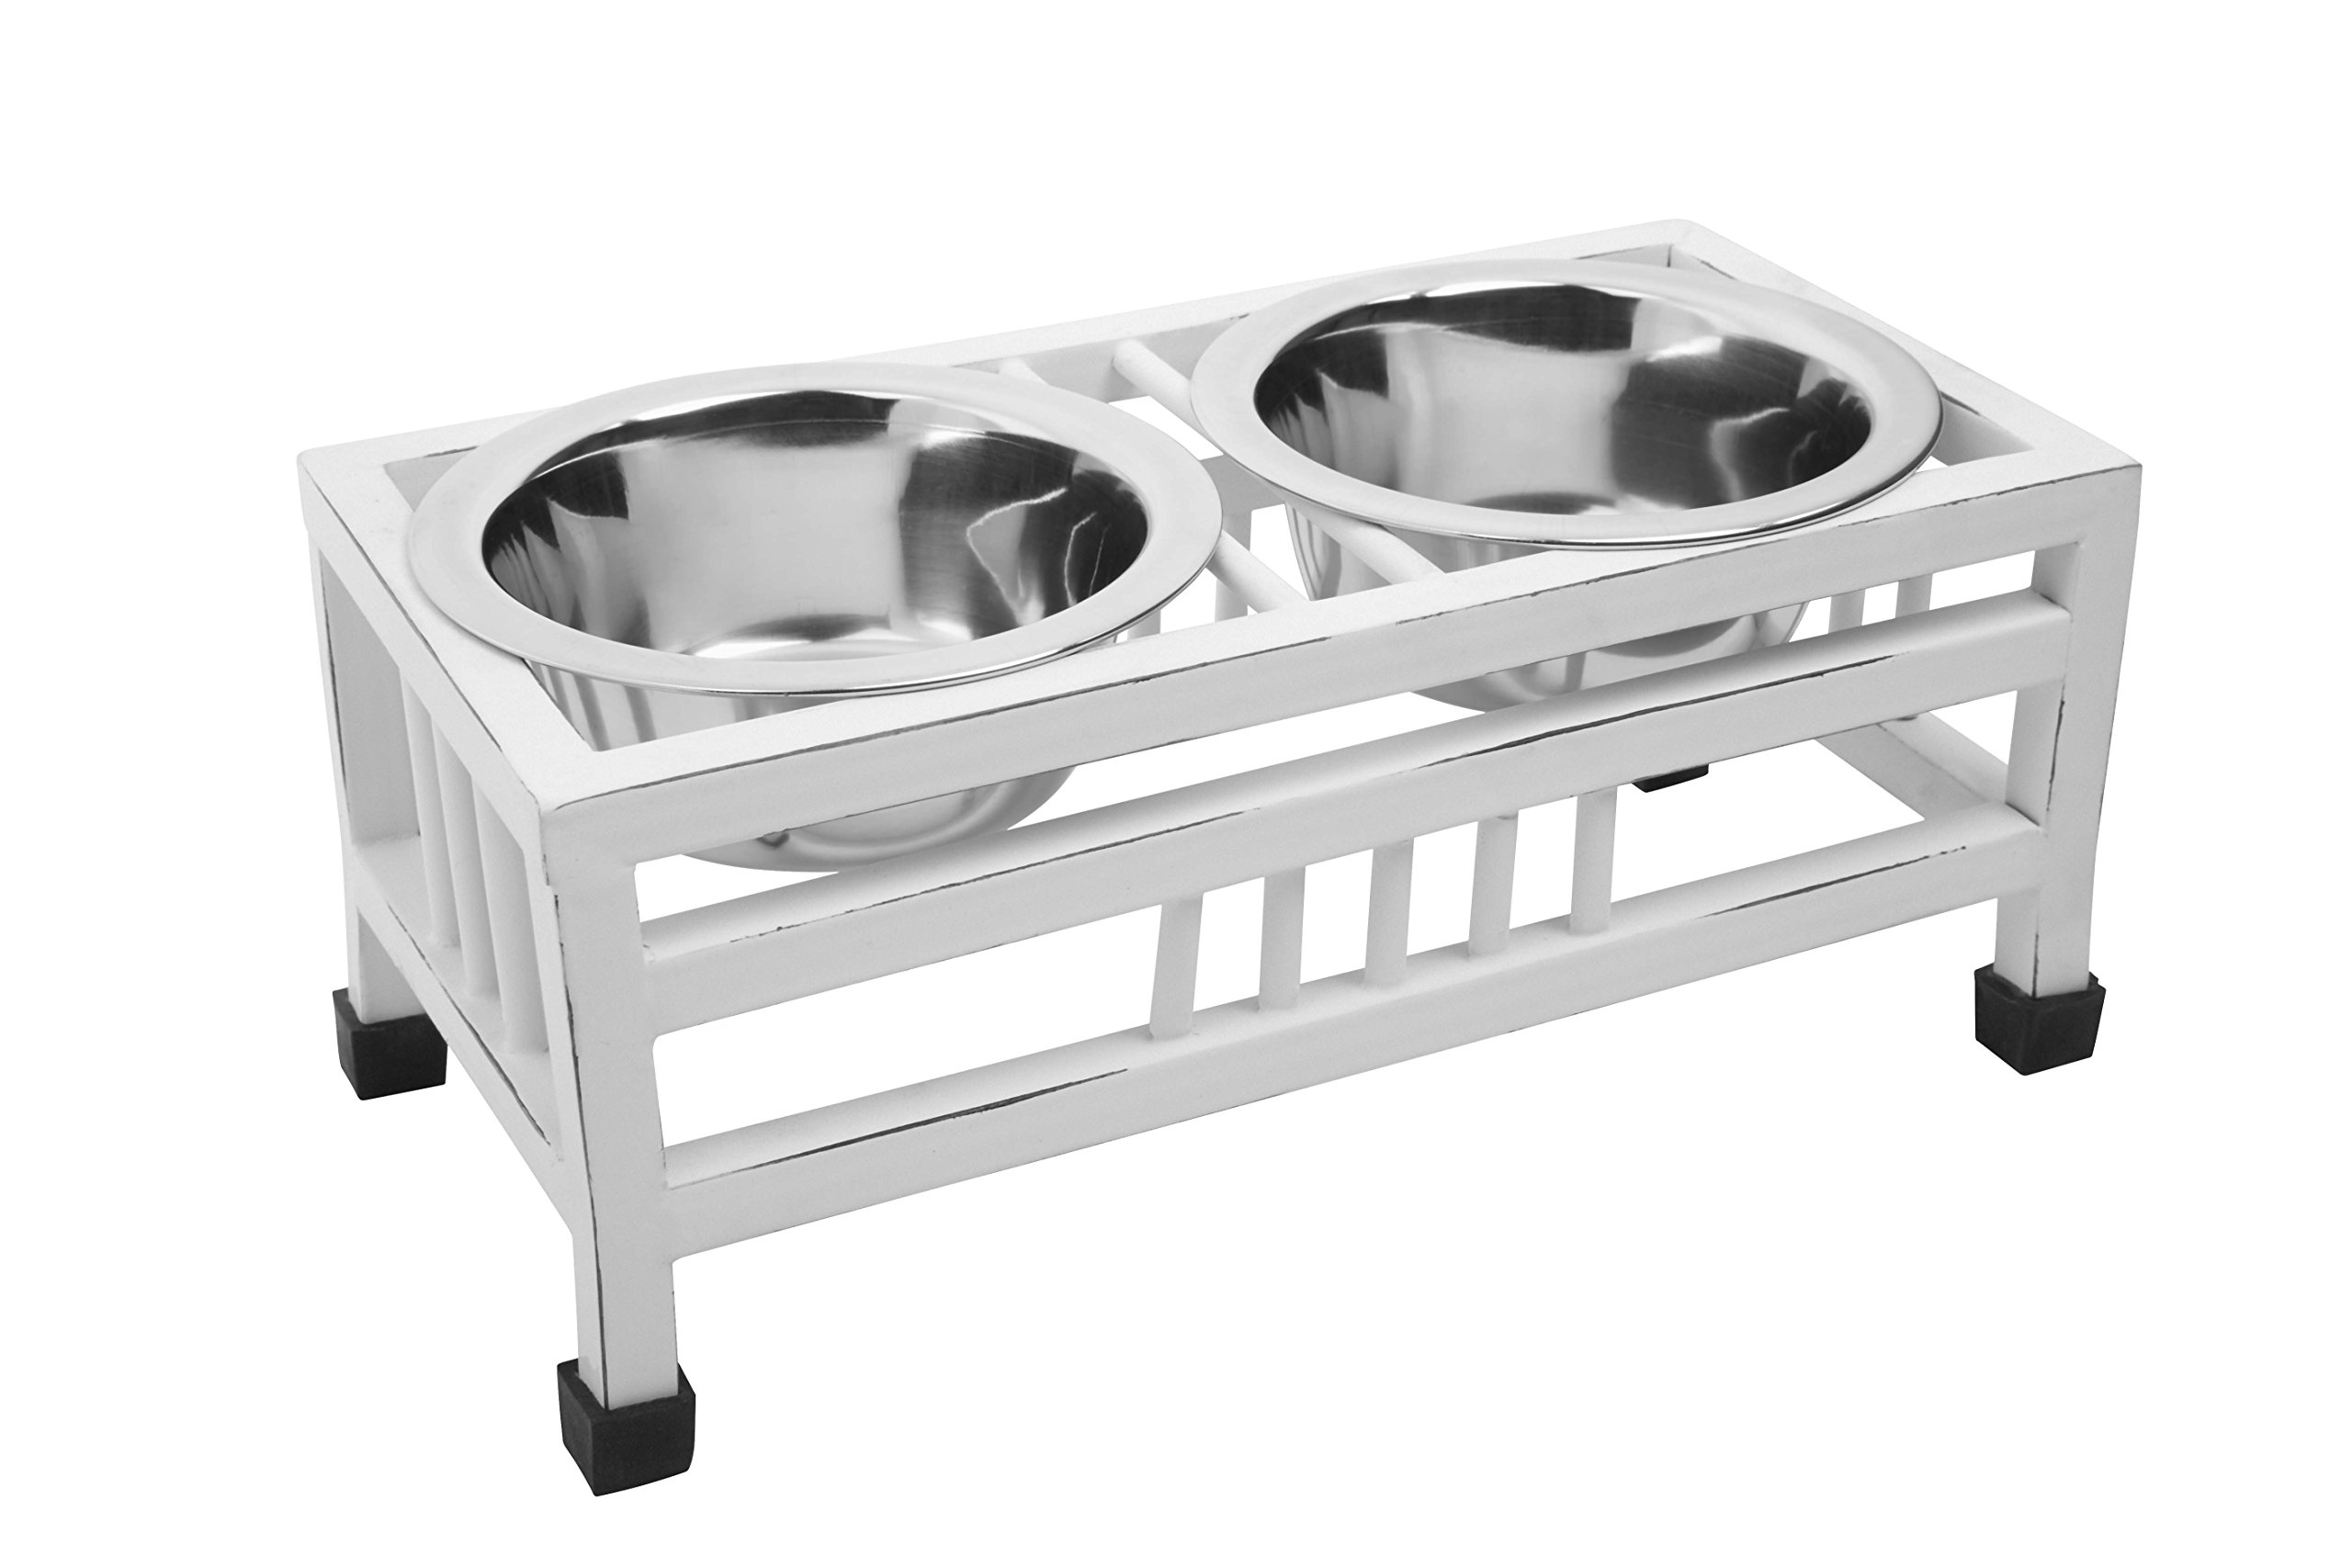 Indipets Wrought Iron Diner with Antique Finish, 1 quart